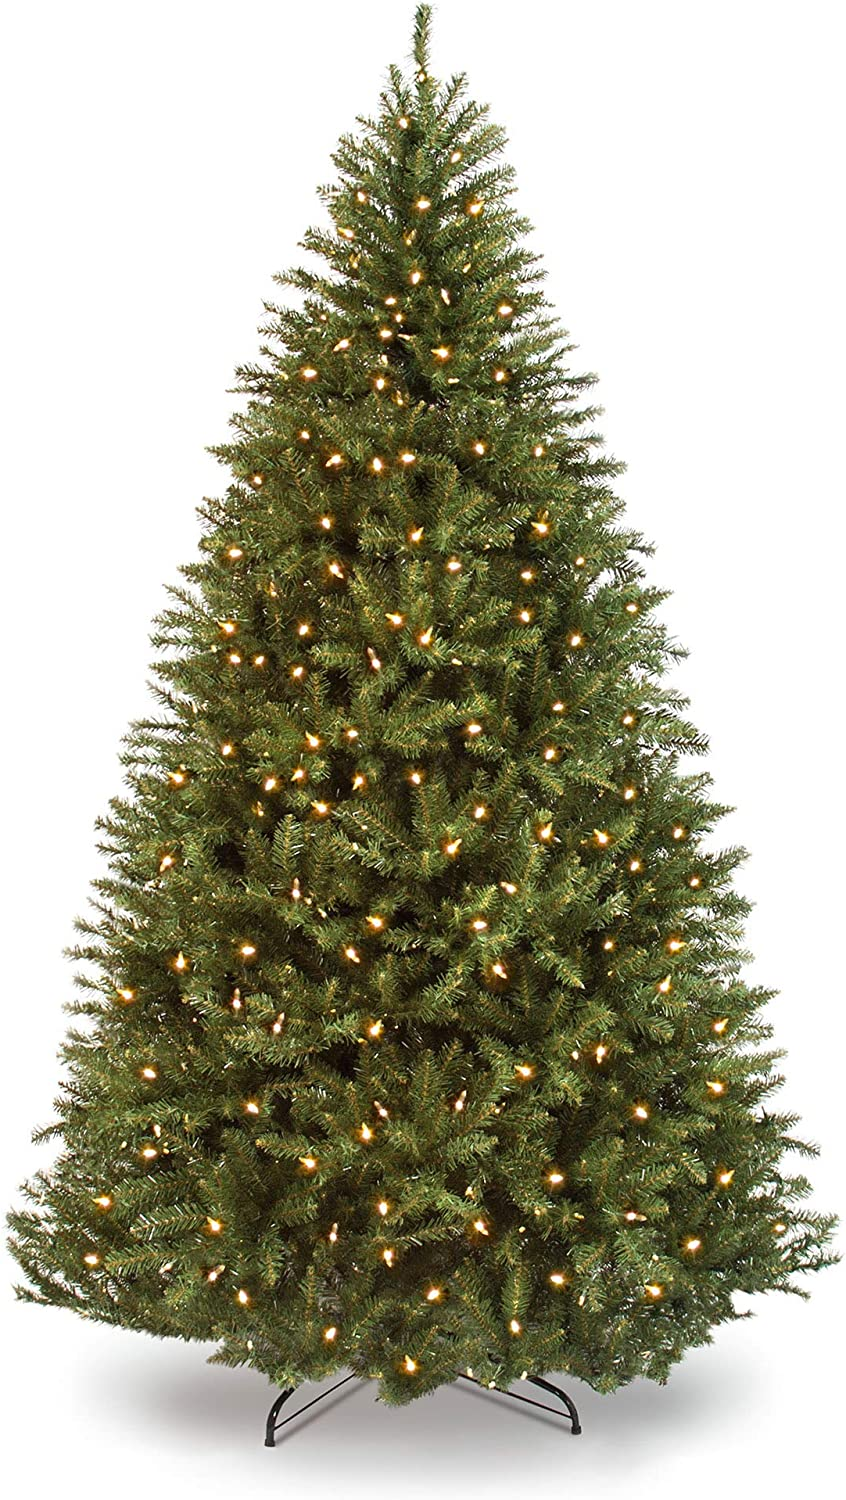 Best Choice Products 9ft Pre-Lit Hinged Douglas Full Fir Artificial Christmas Tree Holiday Decoration w/ 1000 Lights